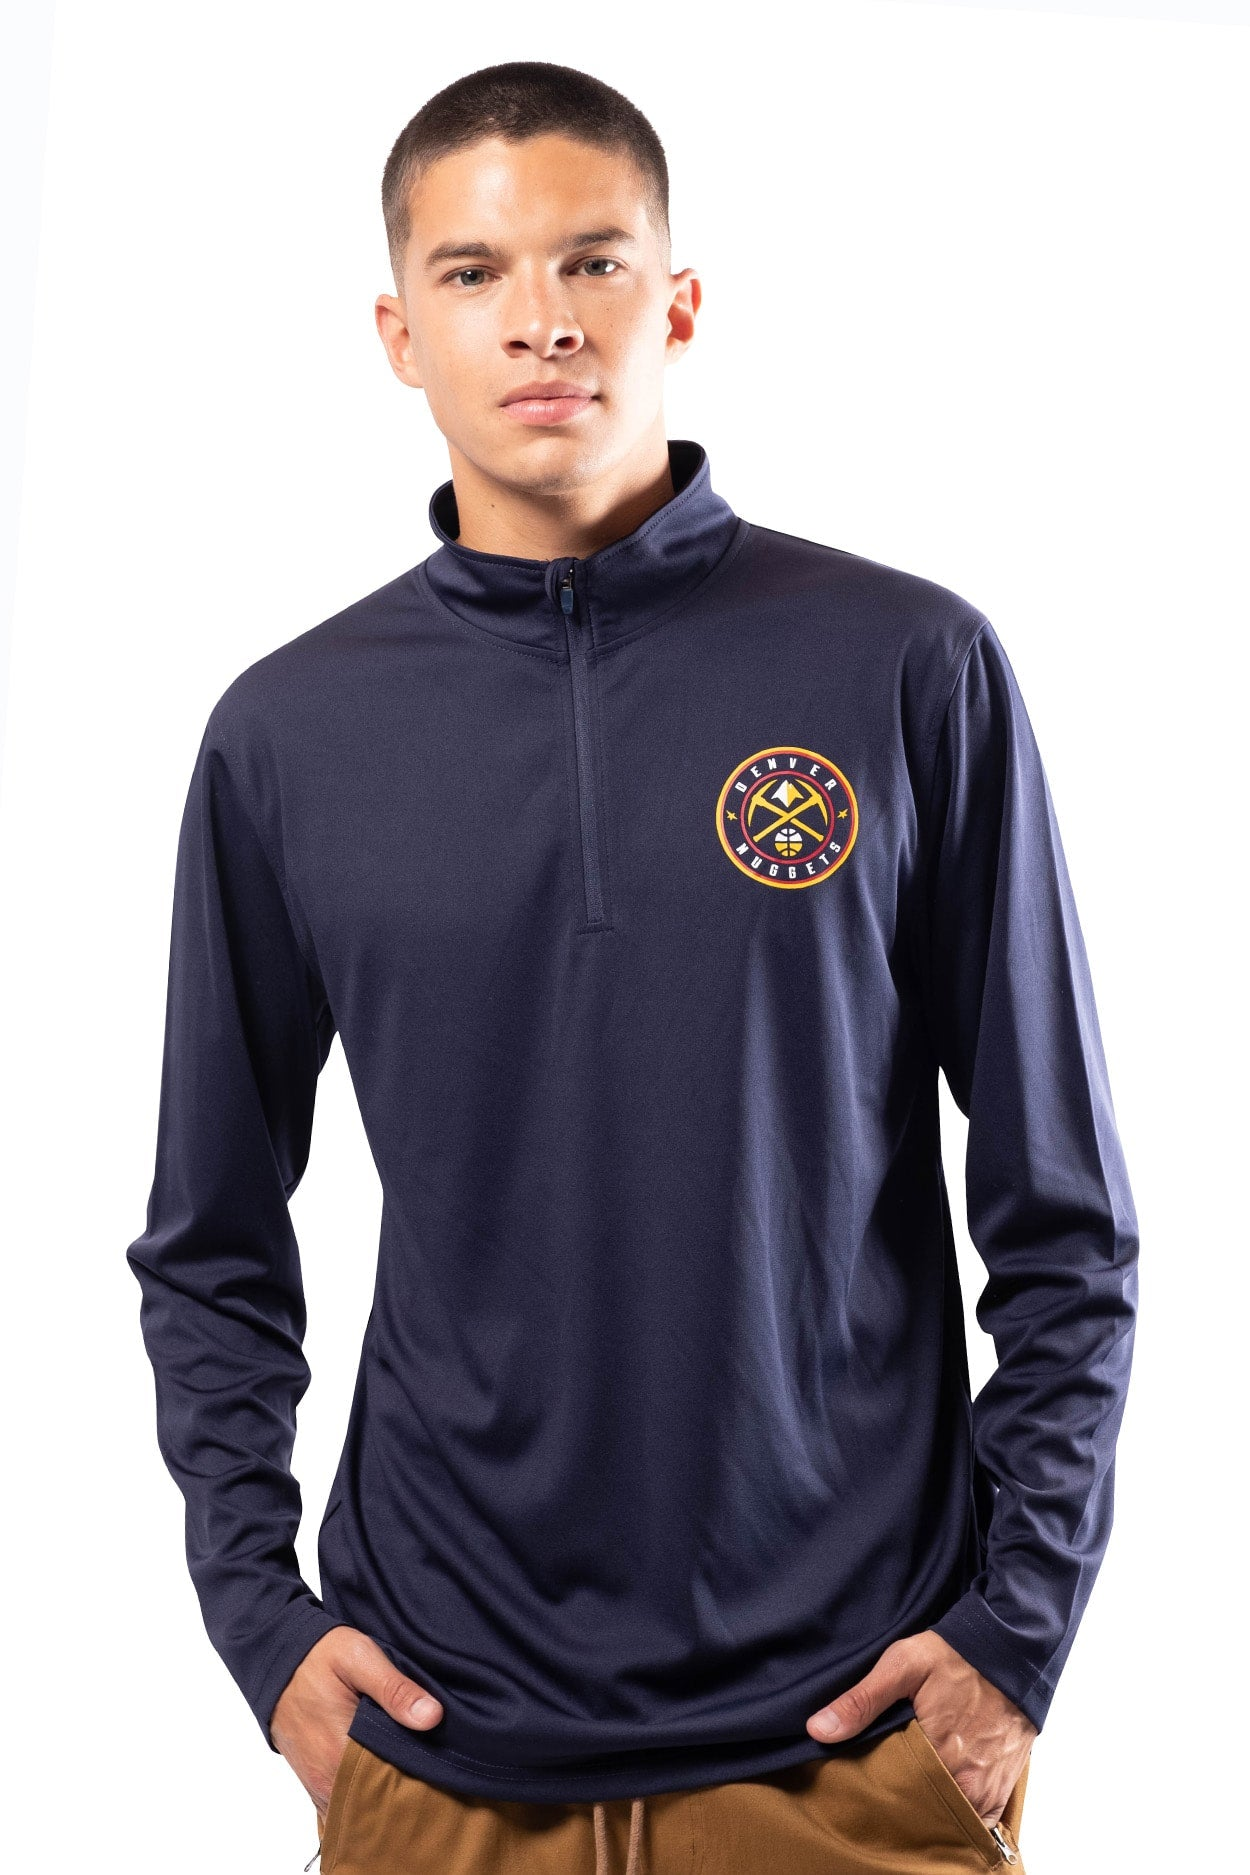 NBA Denver Nuggets Men's Quarter Zip Quick Dry Tee|Denver Nuggets